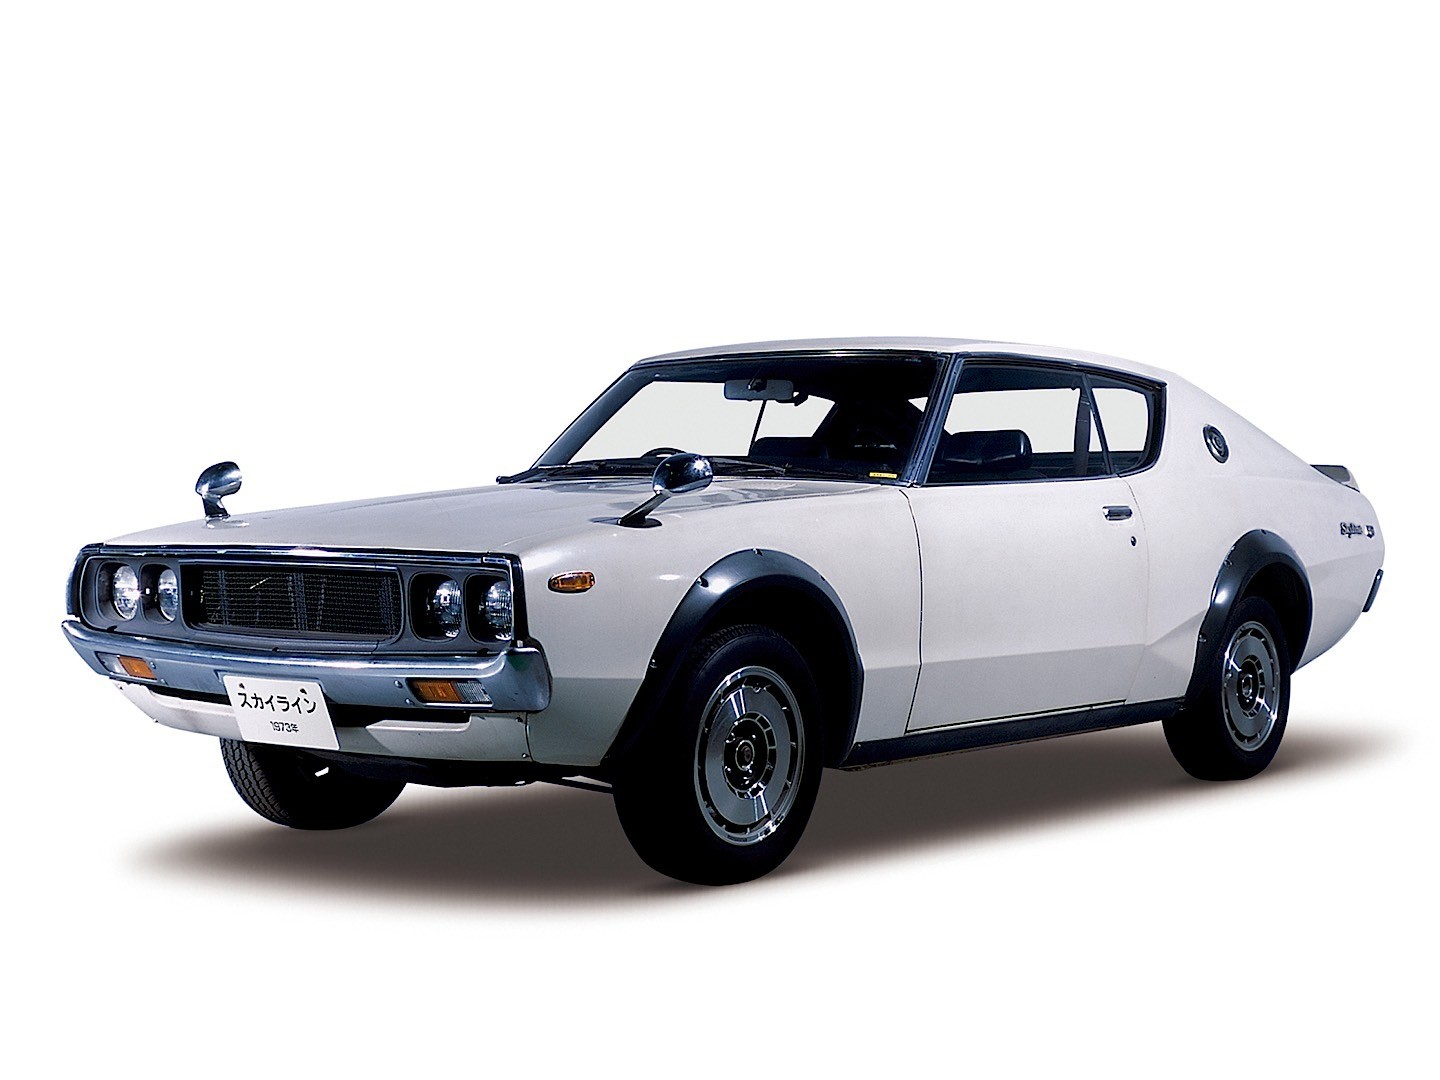 nissan skyline gt r c110 specs 1972 1973 autoevolution. Black Bedroom Furniture Sets. Home Design Ideas